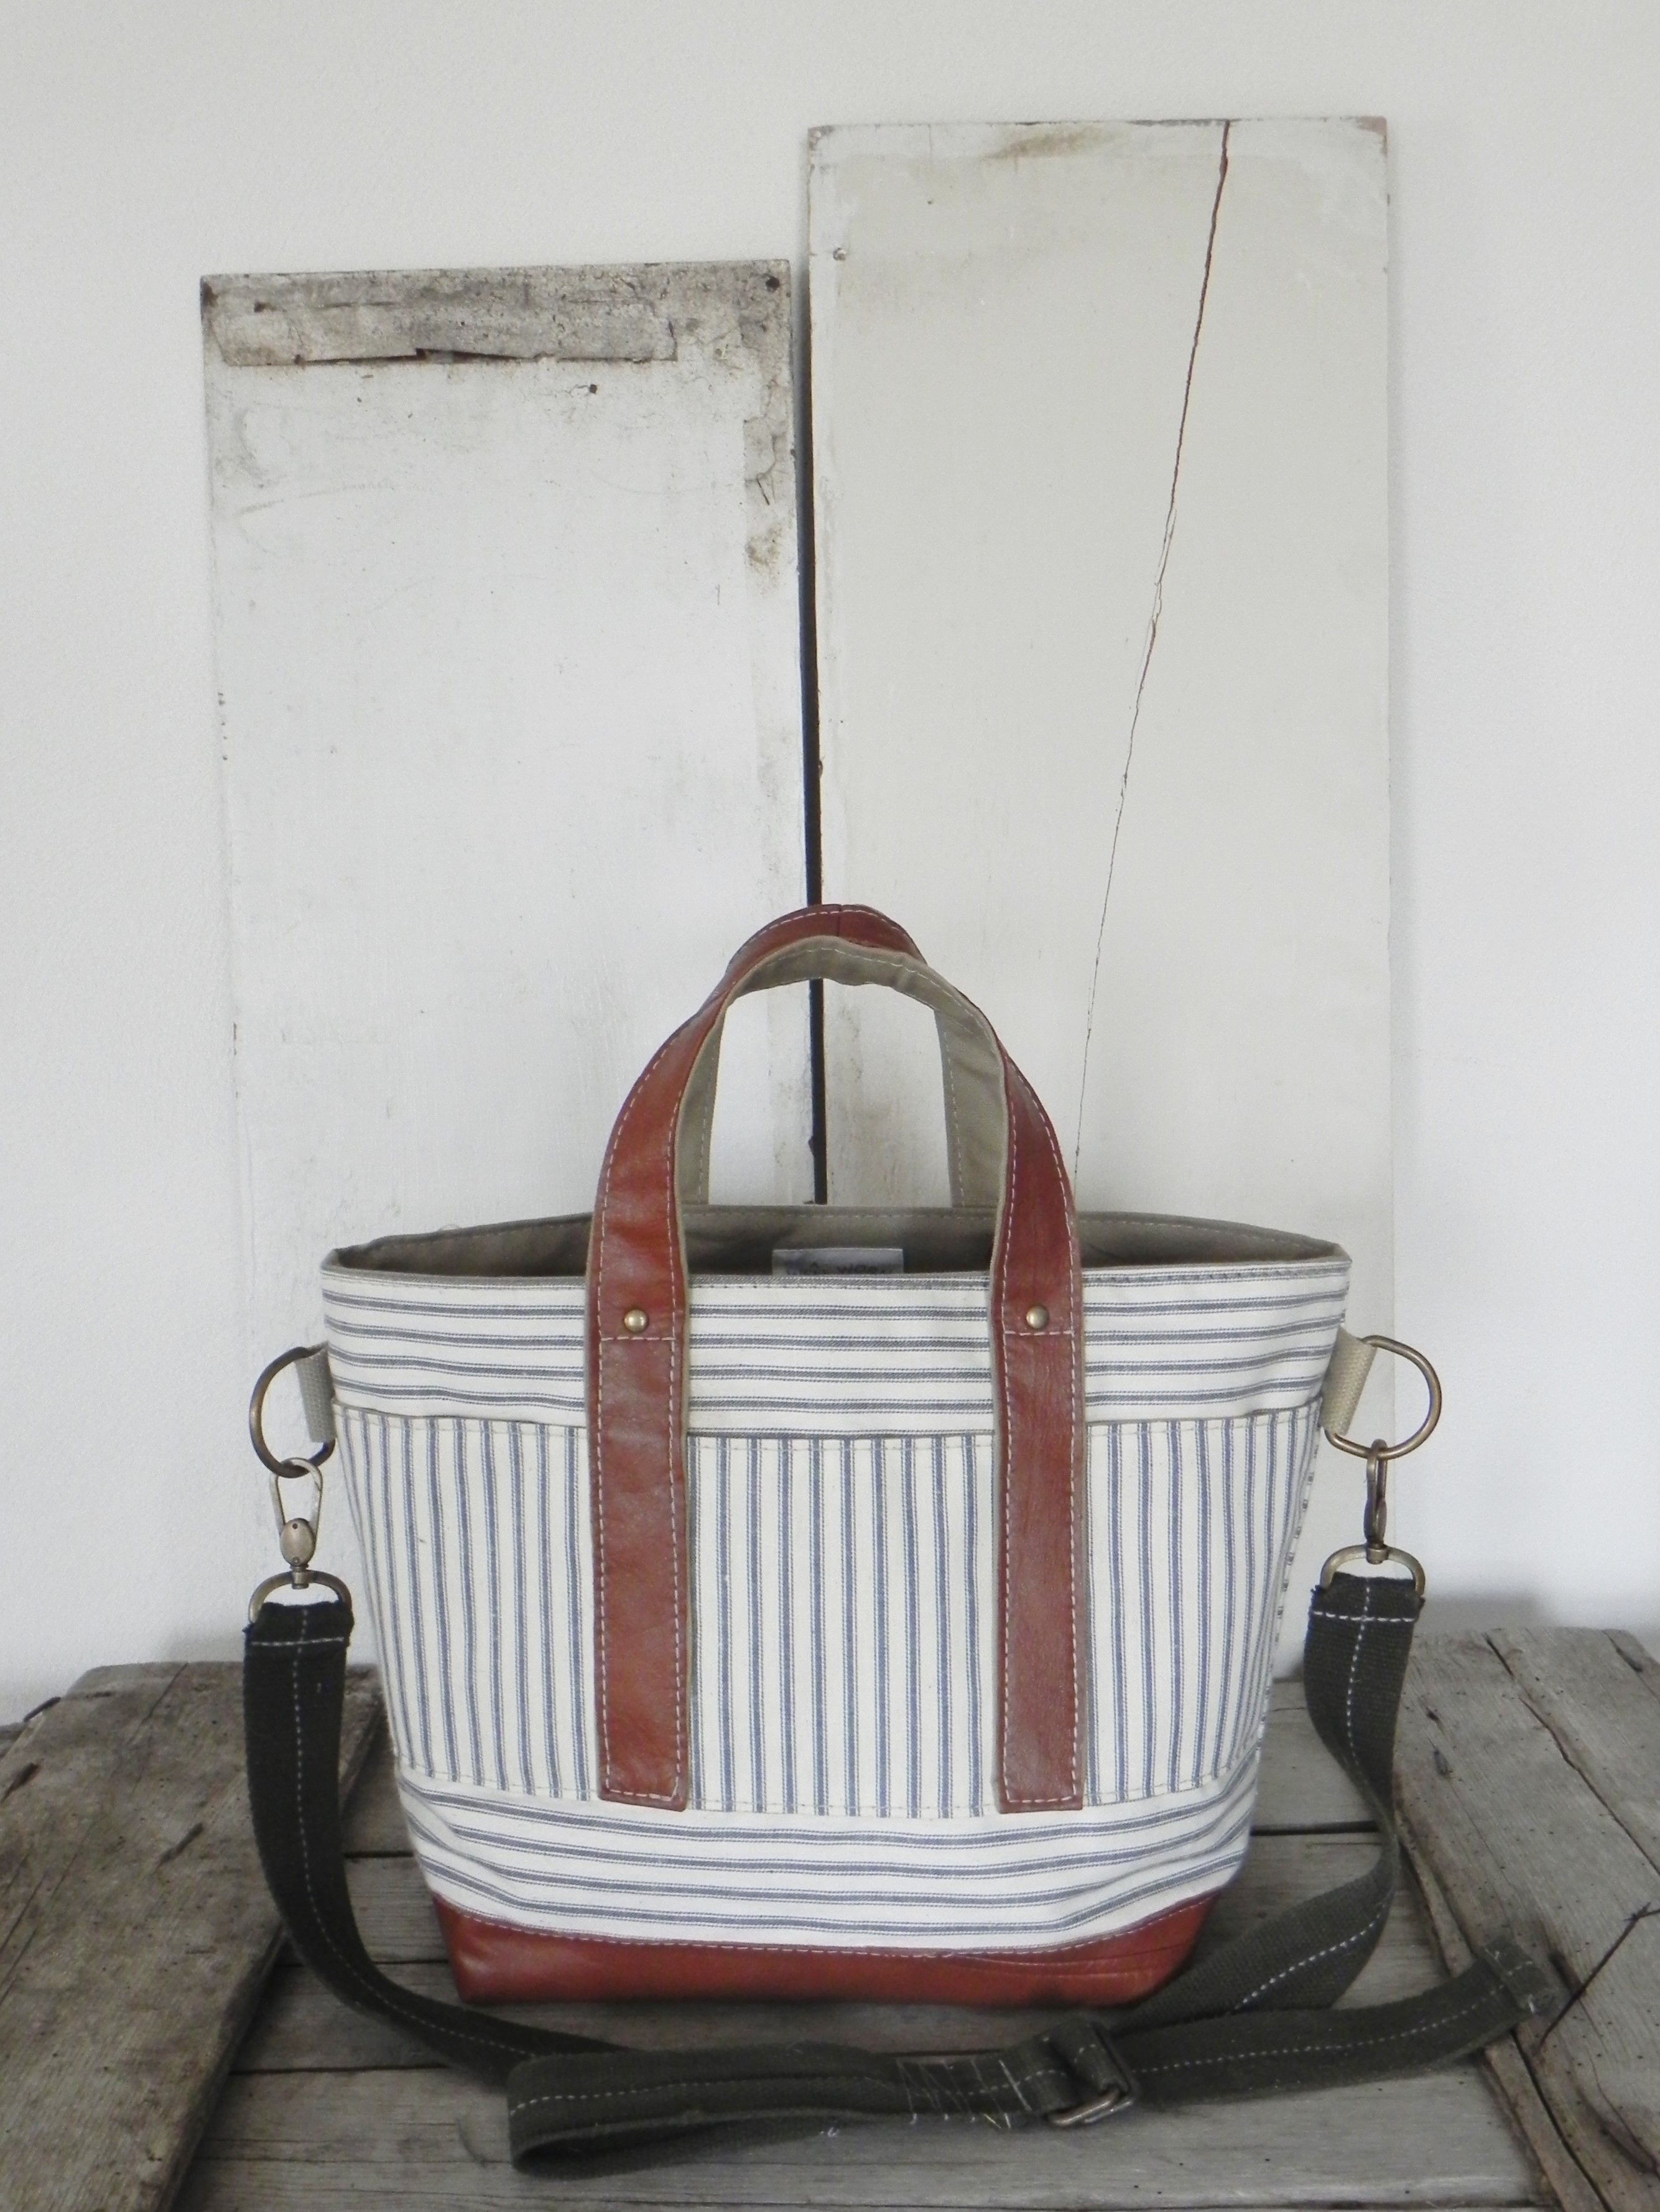 9a7b4a25b Tote bag made from 1950's era ticking fabric, a reclaimed leather jacket,  and an upcycled belt, A Well Worn Story